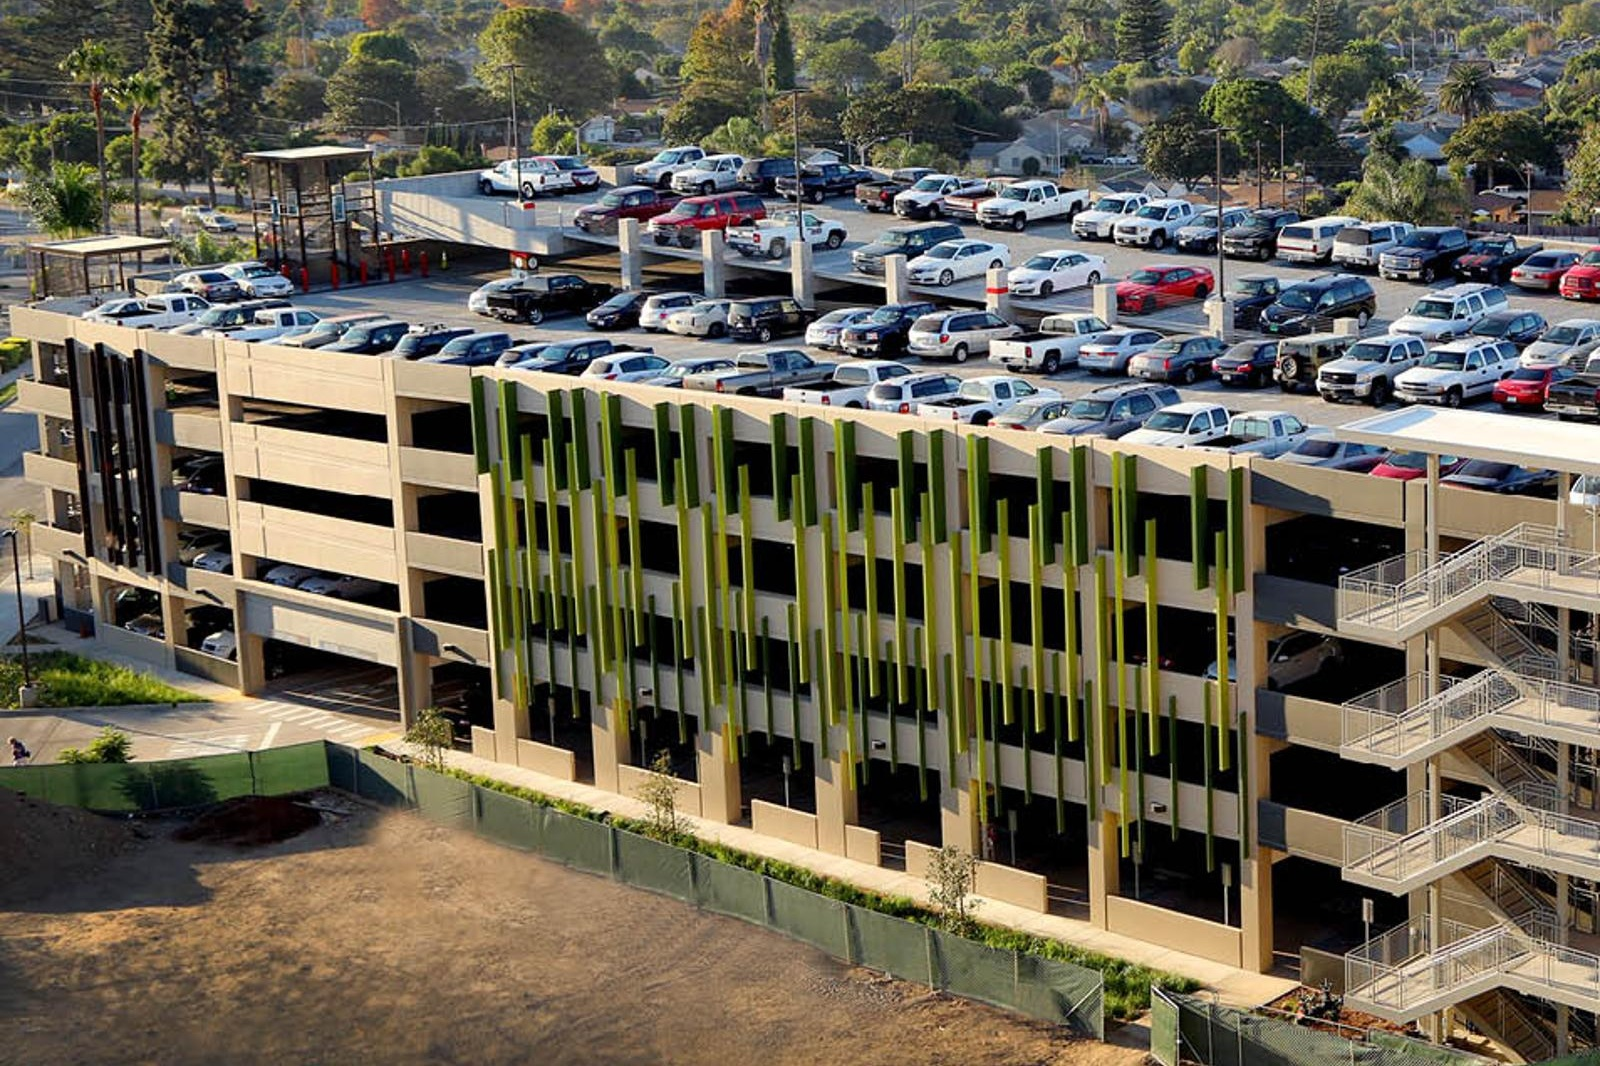 COMMUNITY MEMORIAL HEALTH SYSTEM PARKING STRUCTURE - Ventura, CASix story post-tensioned concrete structure for 571 cars.Contractor: SWINERTONArchitect: IDG PARKITECTS